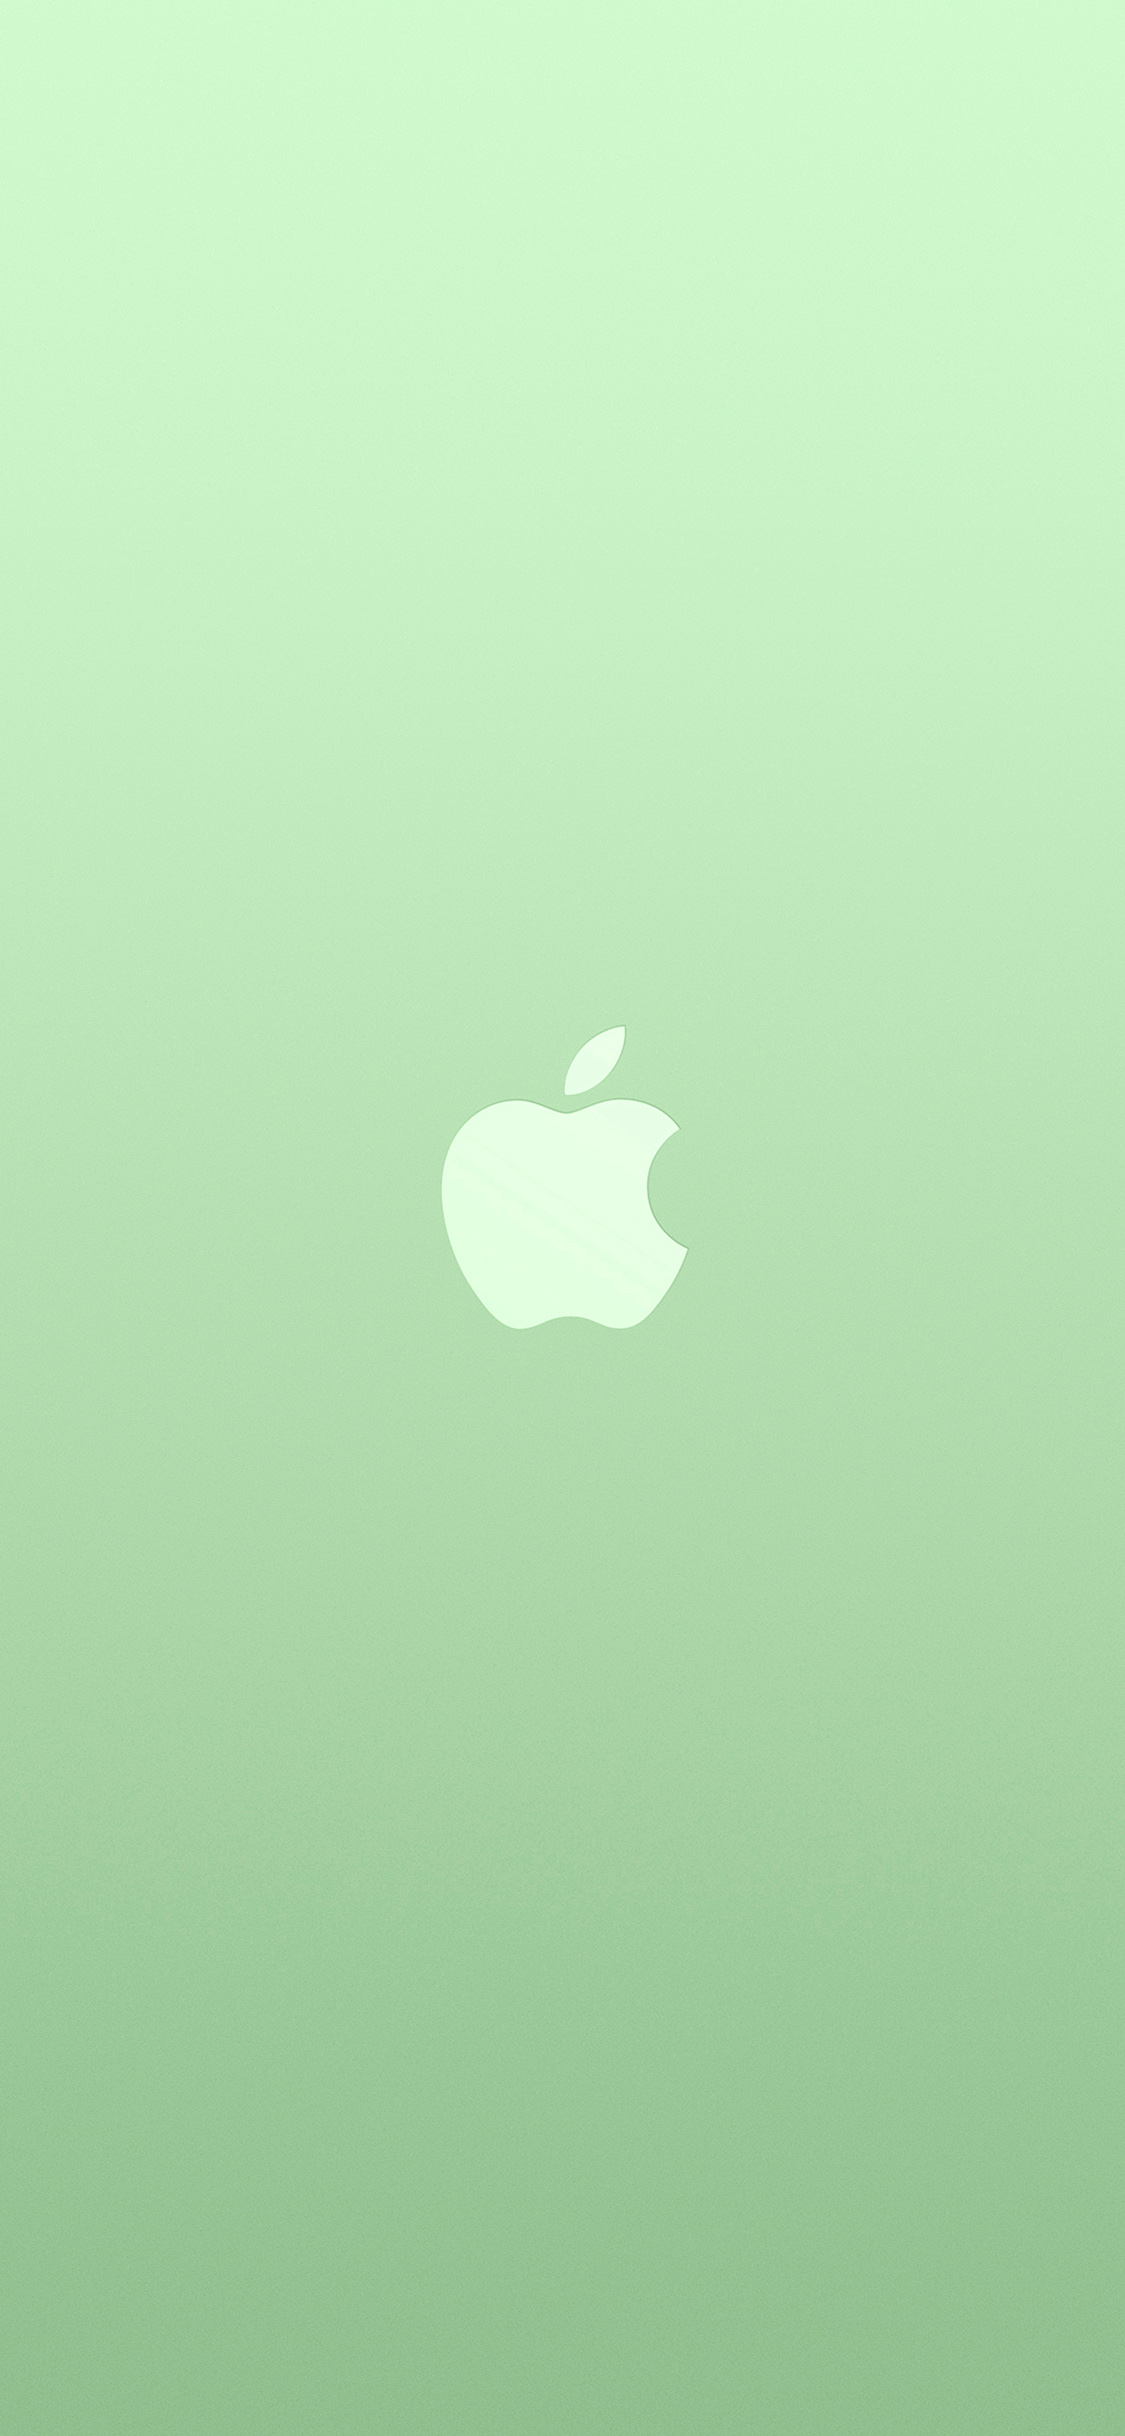 iphonexpapers | iphone x wallpaper | au18-logo-apple-green-white